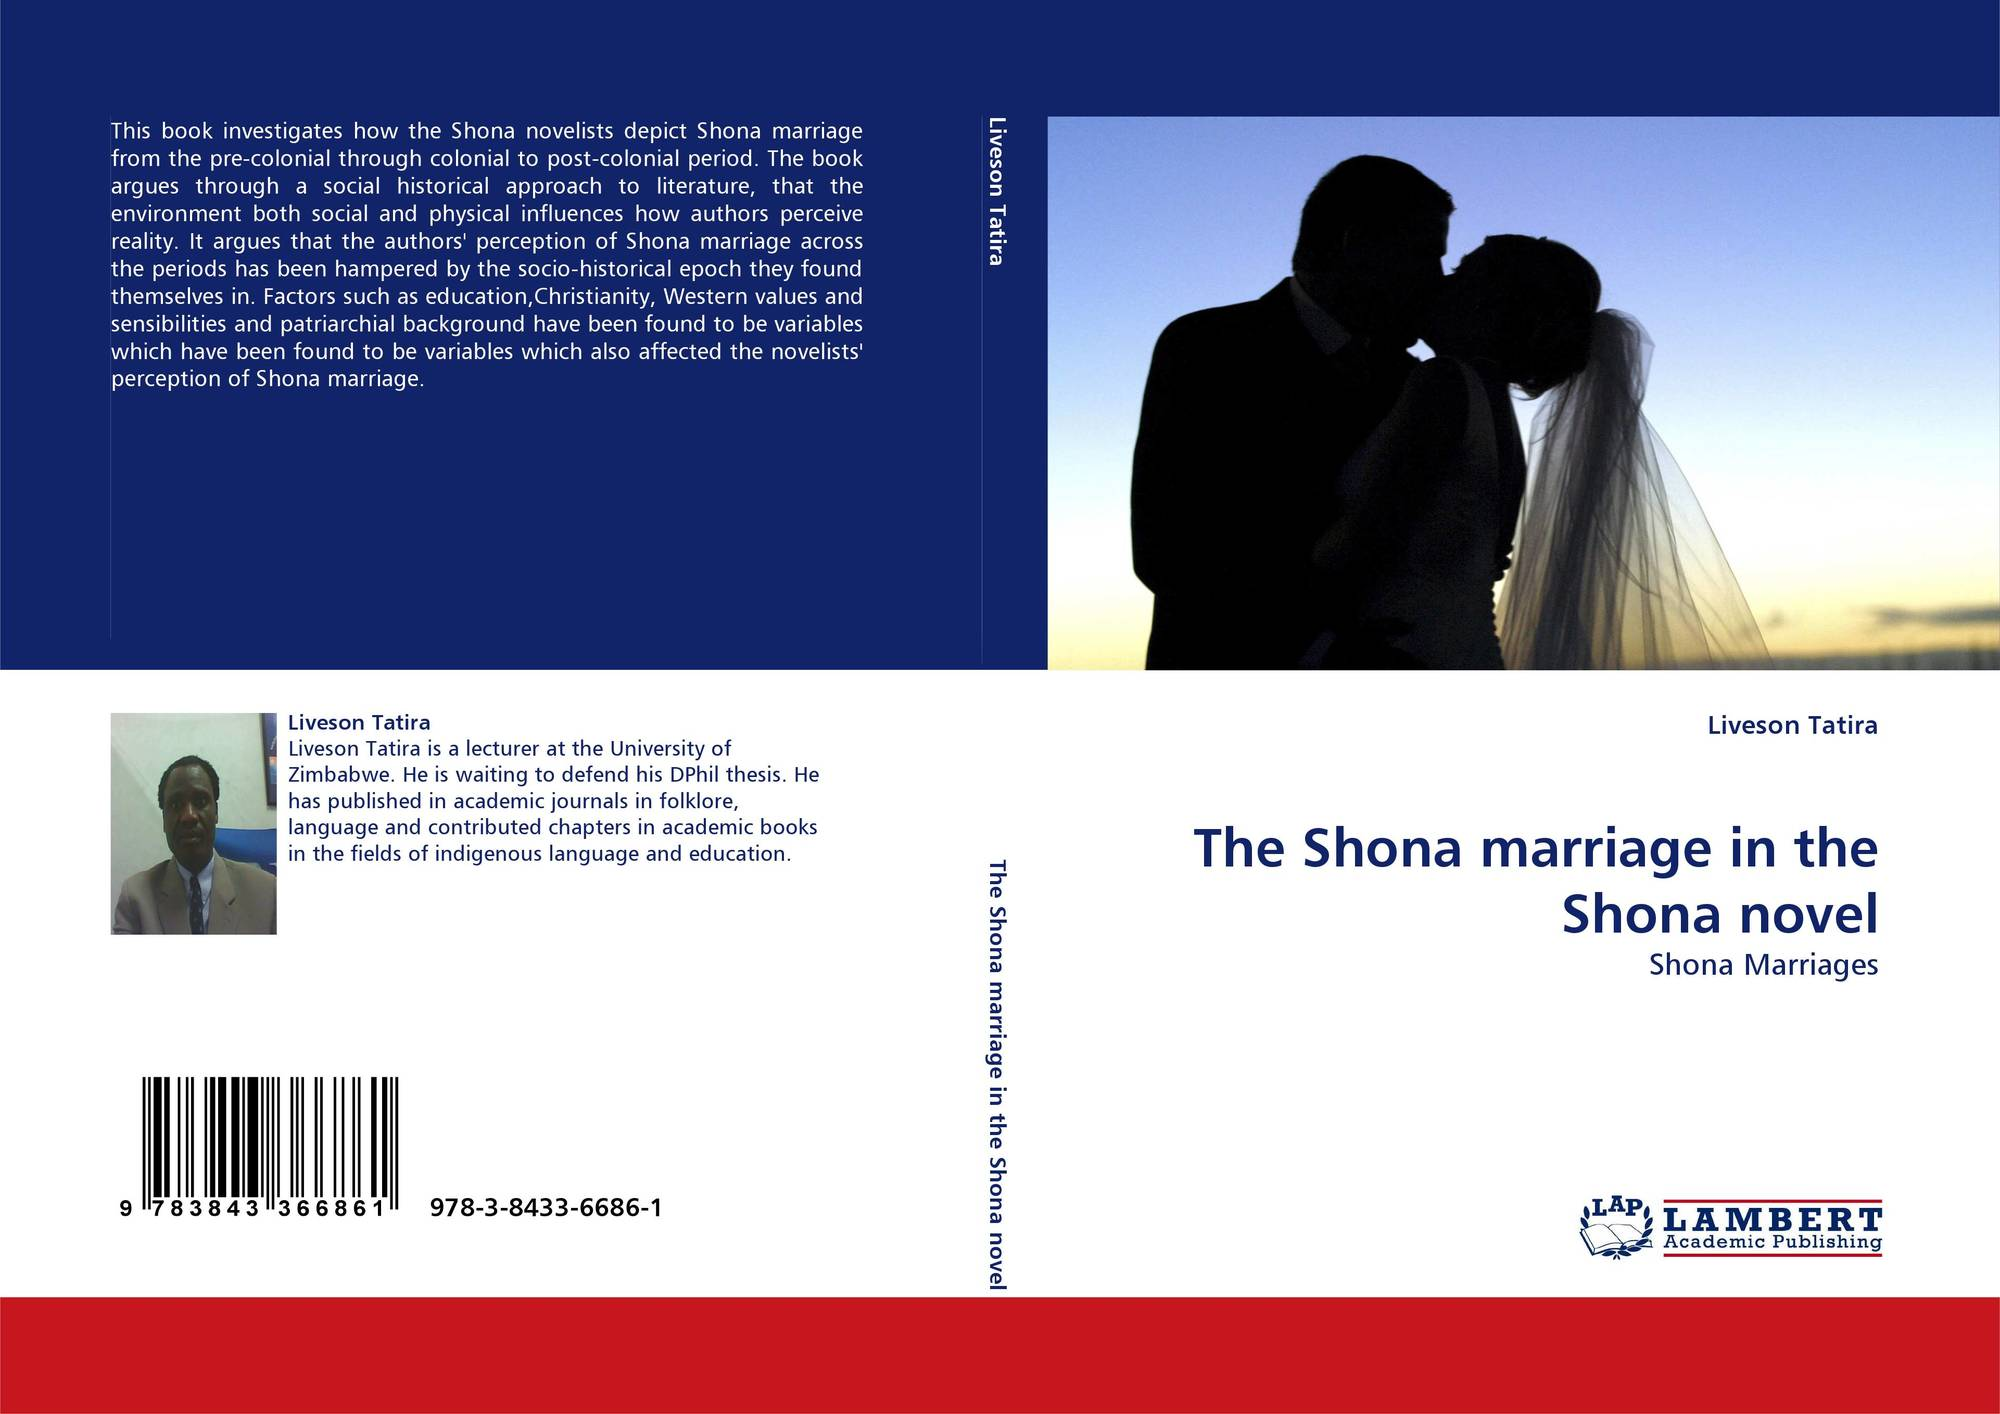 a discussion on marriage decline in the marriage crisis by aja gabel and could temporary marriages r There was a significant decline in the number of marriages during the last in reference to the position supporting gay marriage, the discussion will focus.